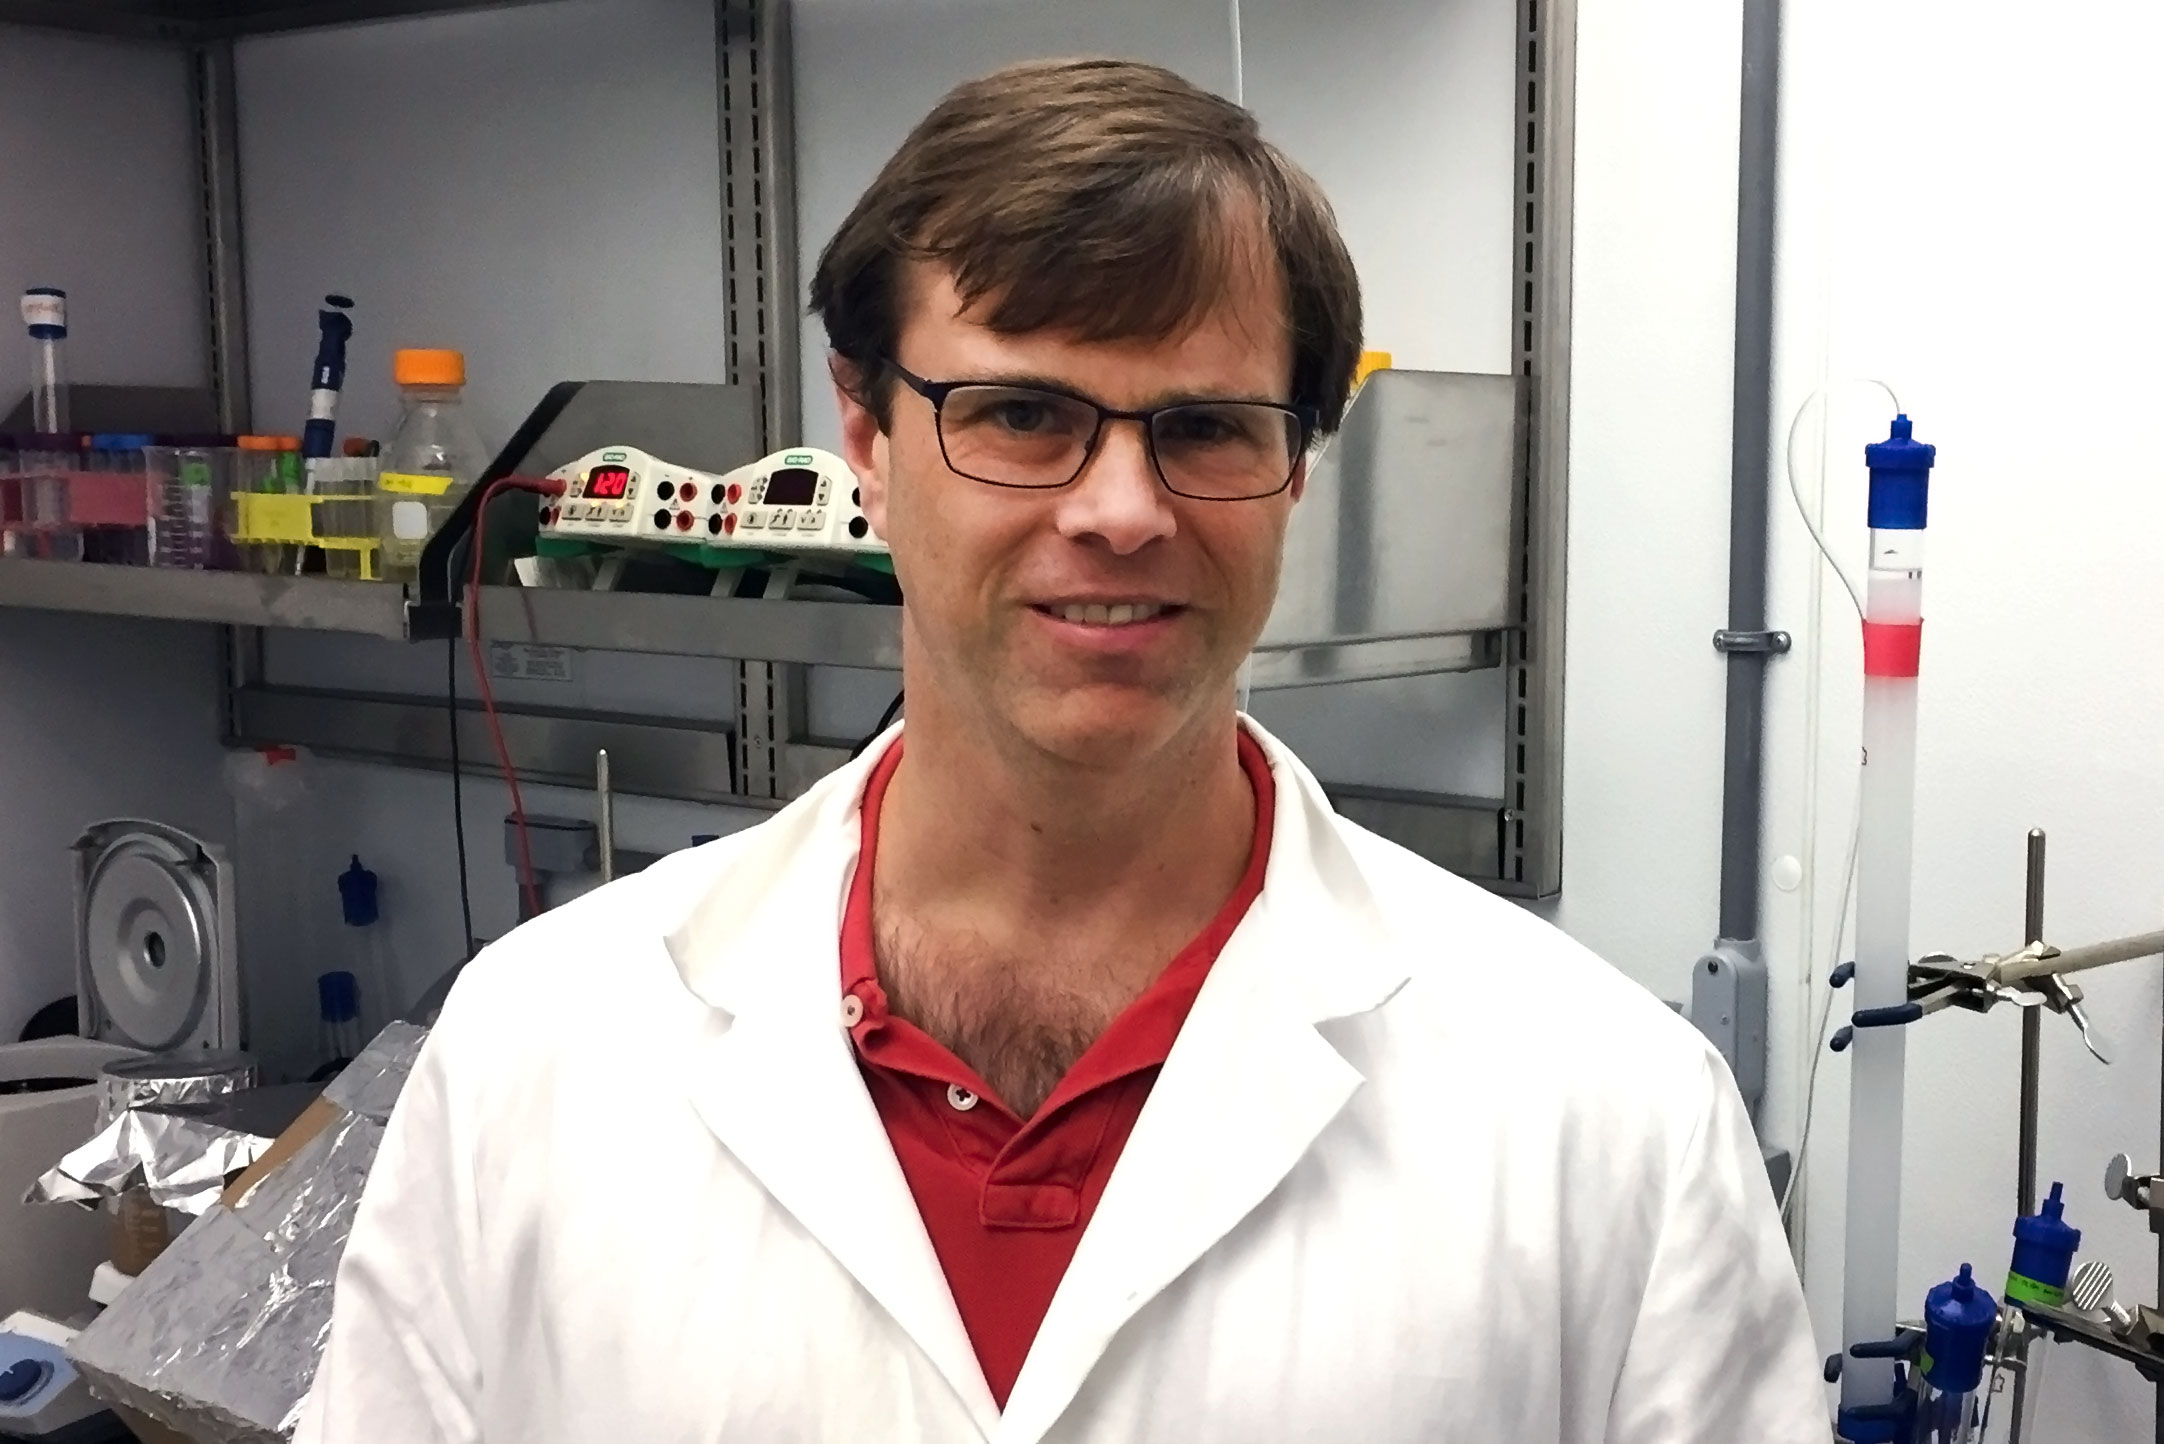 Christopher Stroupe is targeting HOPS molecules as he seeks treatments for Ebola and cancer.